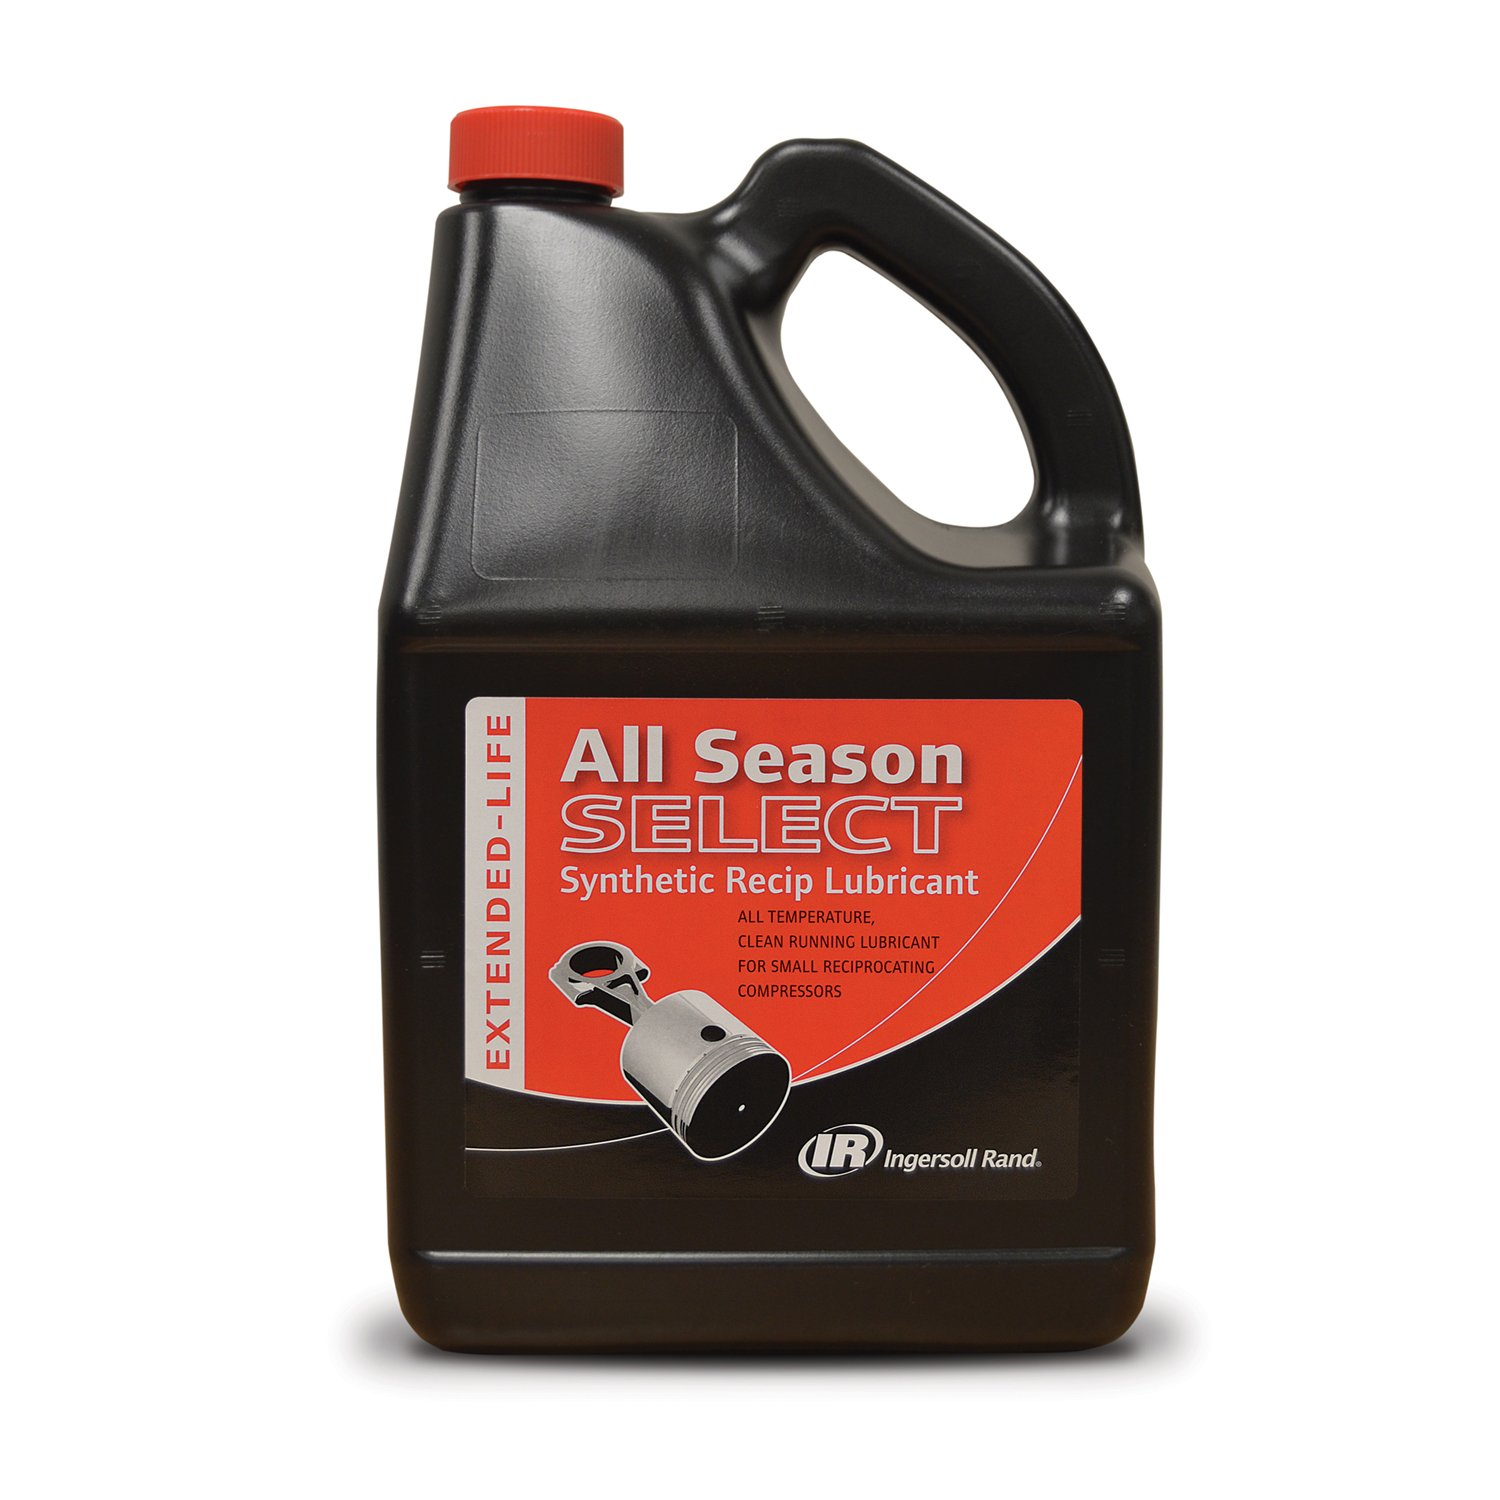 Ingersoll Rand 38440236 All Season Select 5 L Bt,